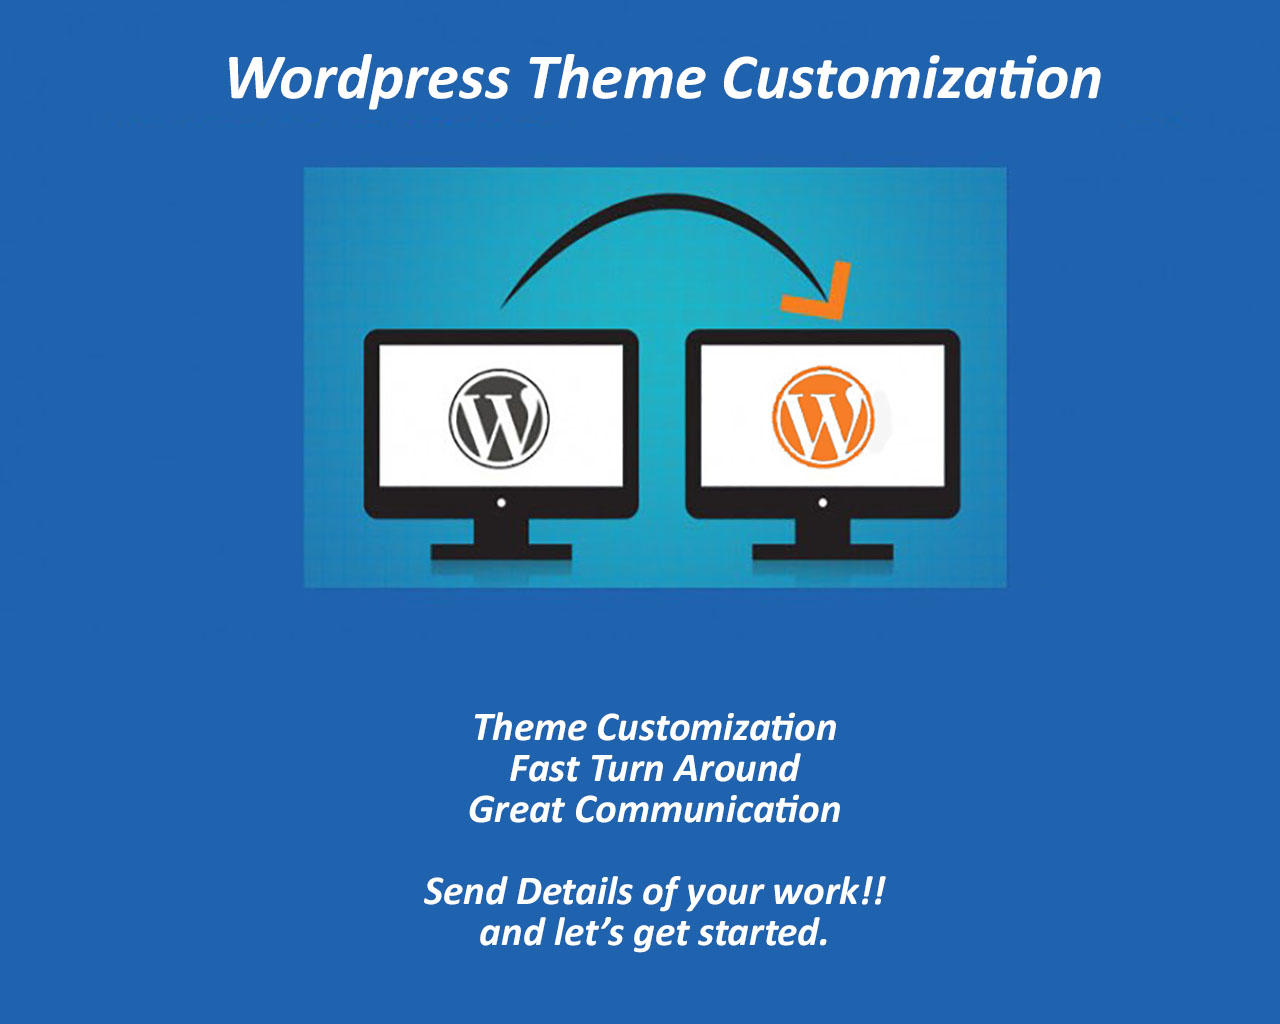 Wordpress Theme Customization by webfulcreations - 90530